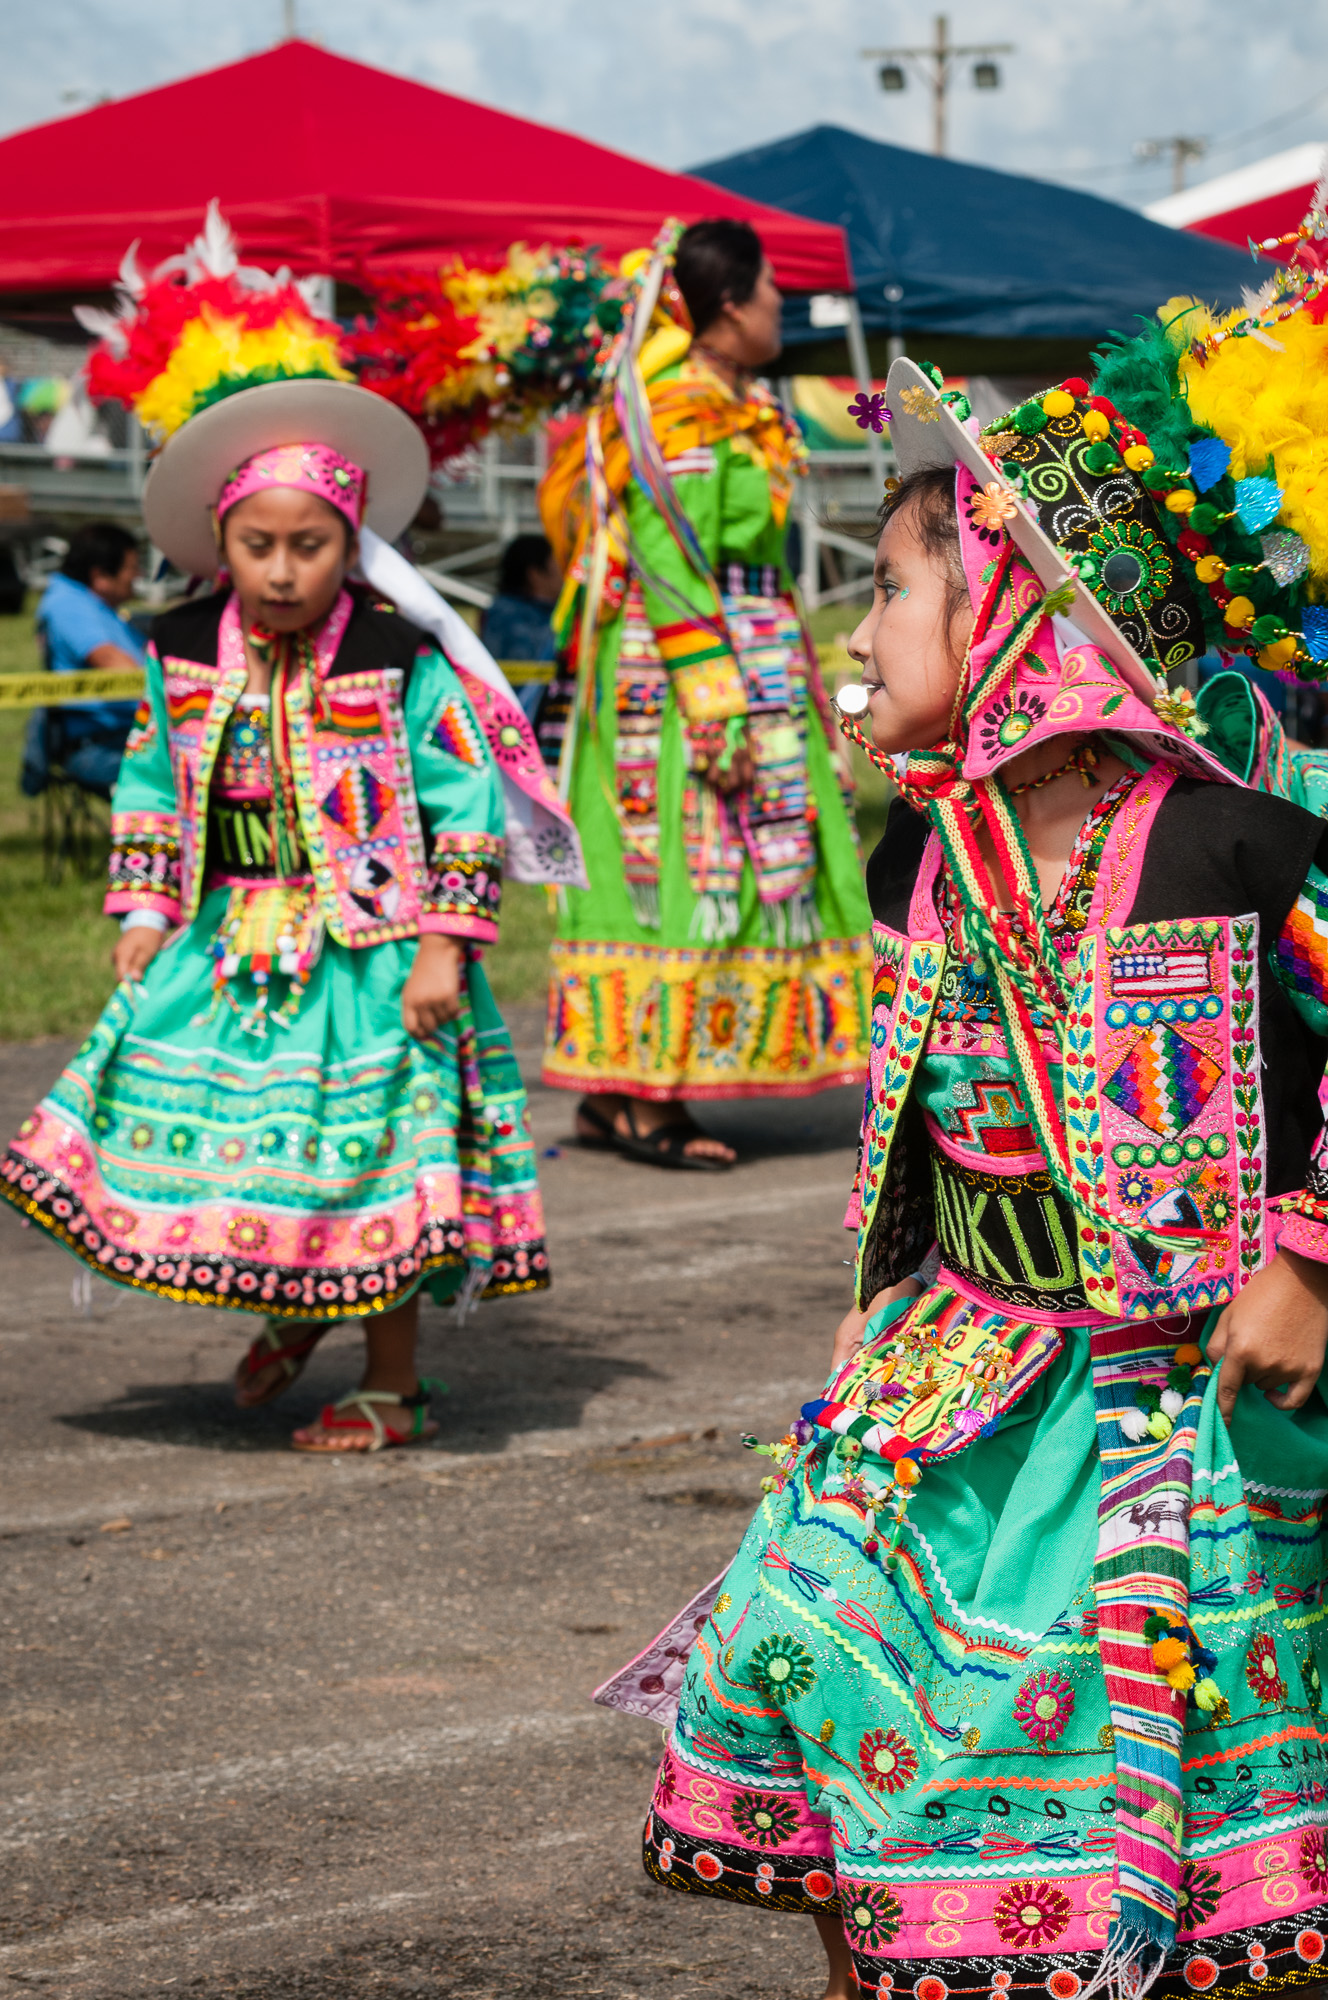 This photo captures a moment from a Tinkus dance performed by Tinkus Bolivia. I believe the girl with the whistle is leading her group within the dance. I like her pose and the positioning of the other people with the image.